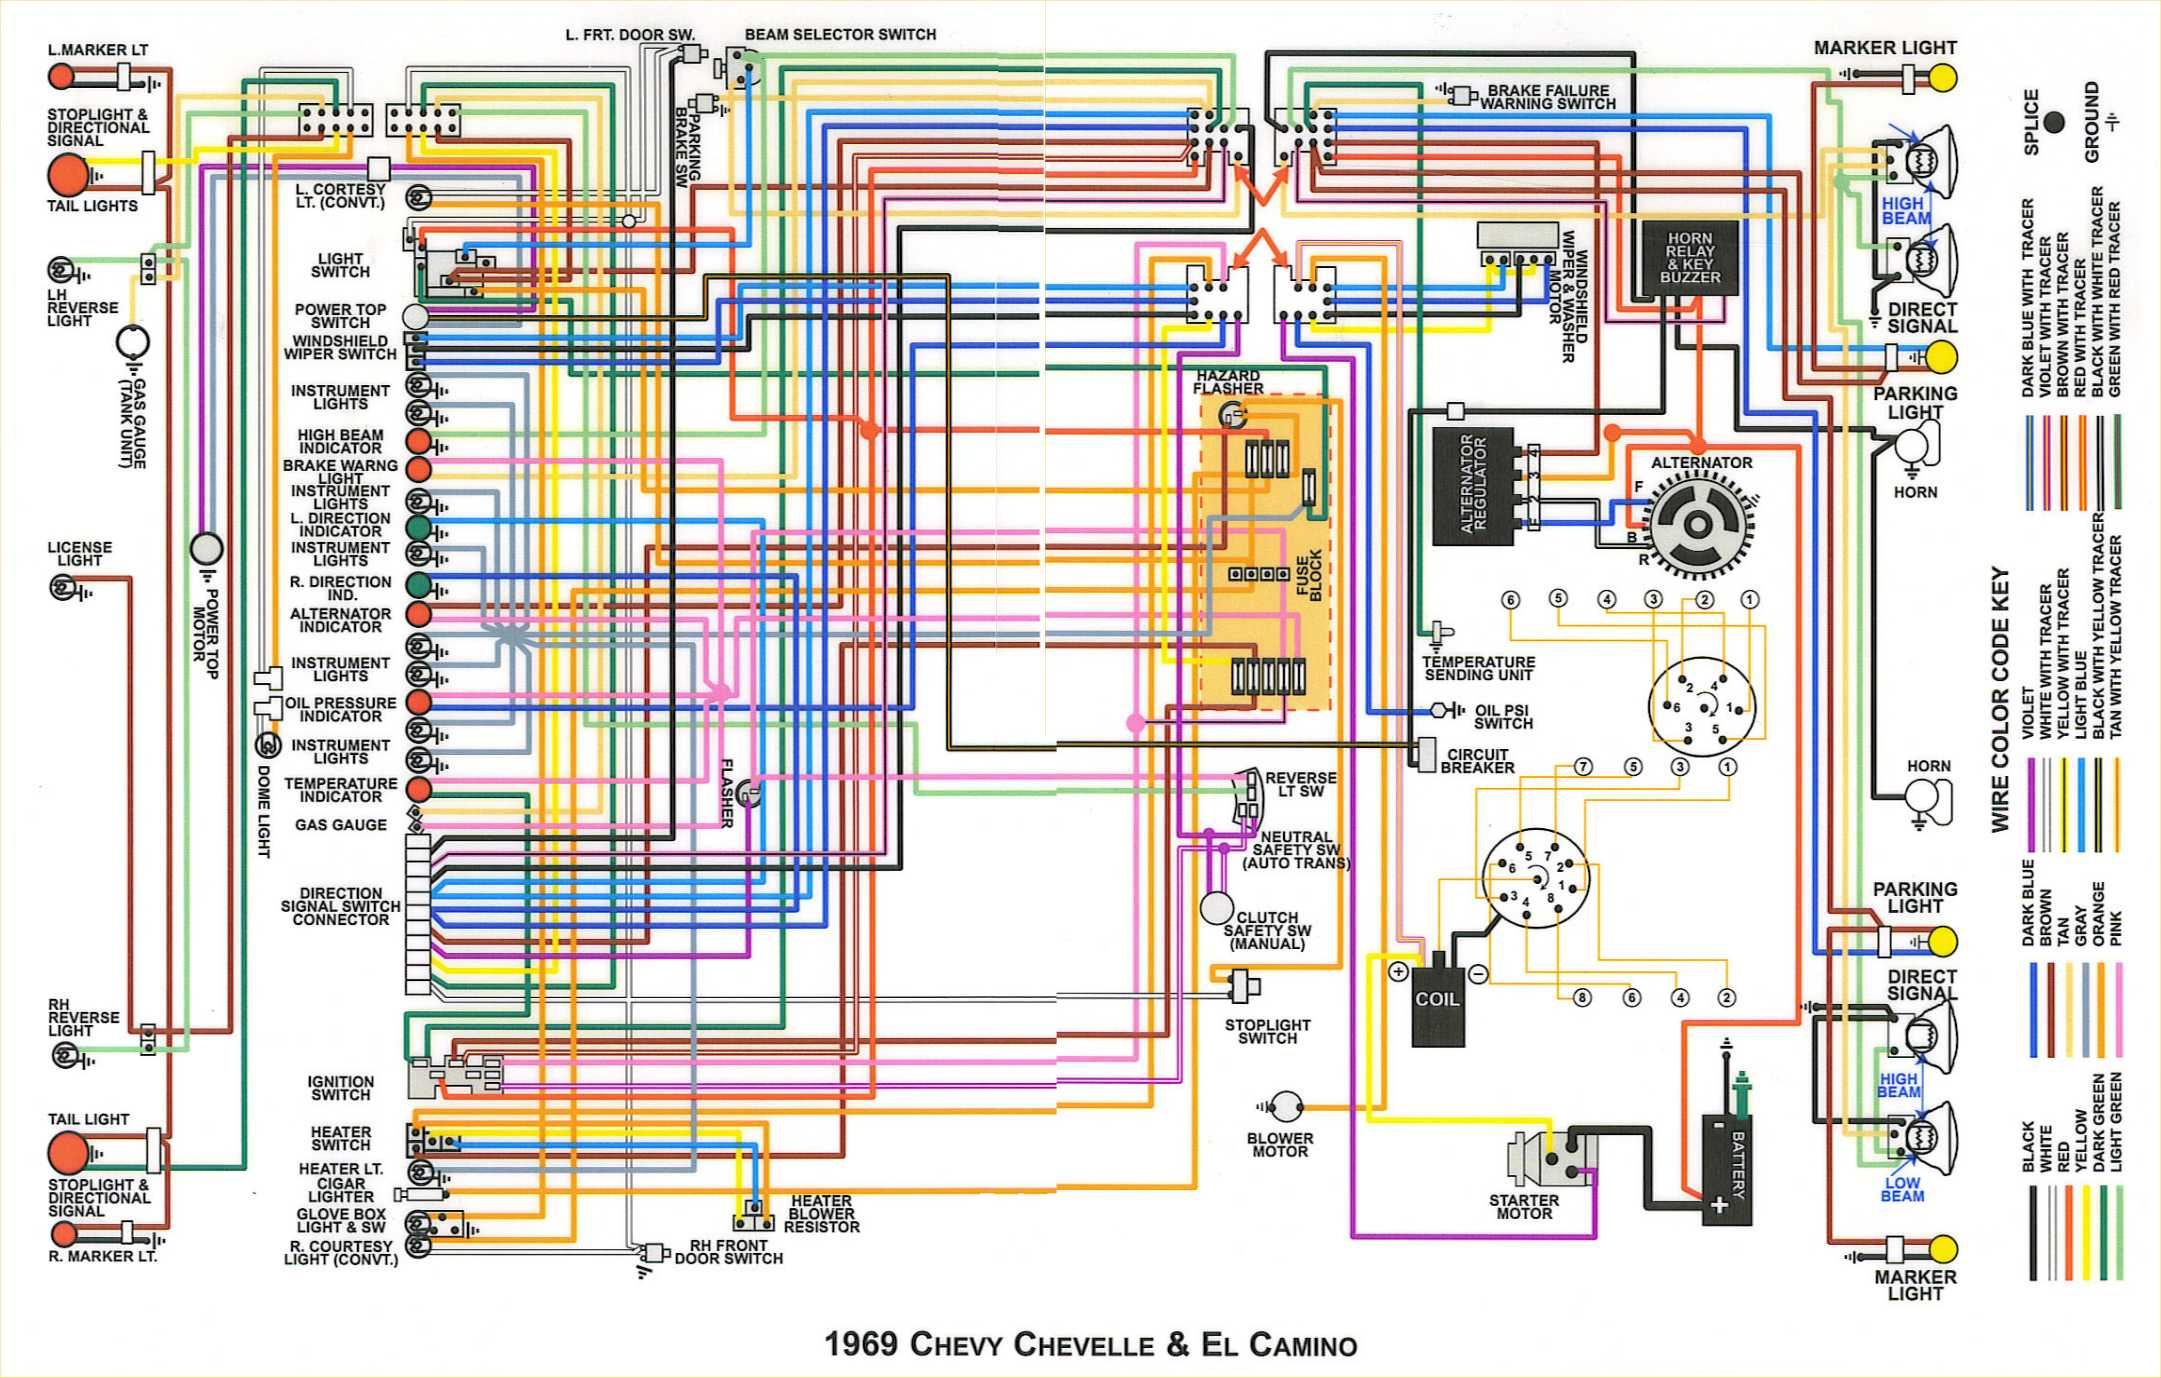 1968 bel air wiper wiring diagram picture 1968 1966 impala ignition switch wiring diagram 1966 auto wiring source